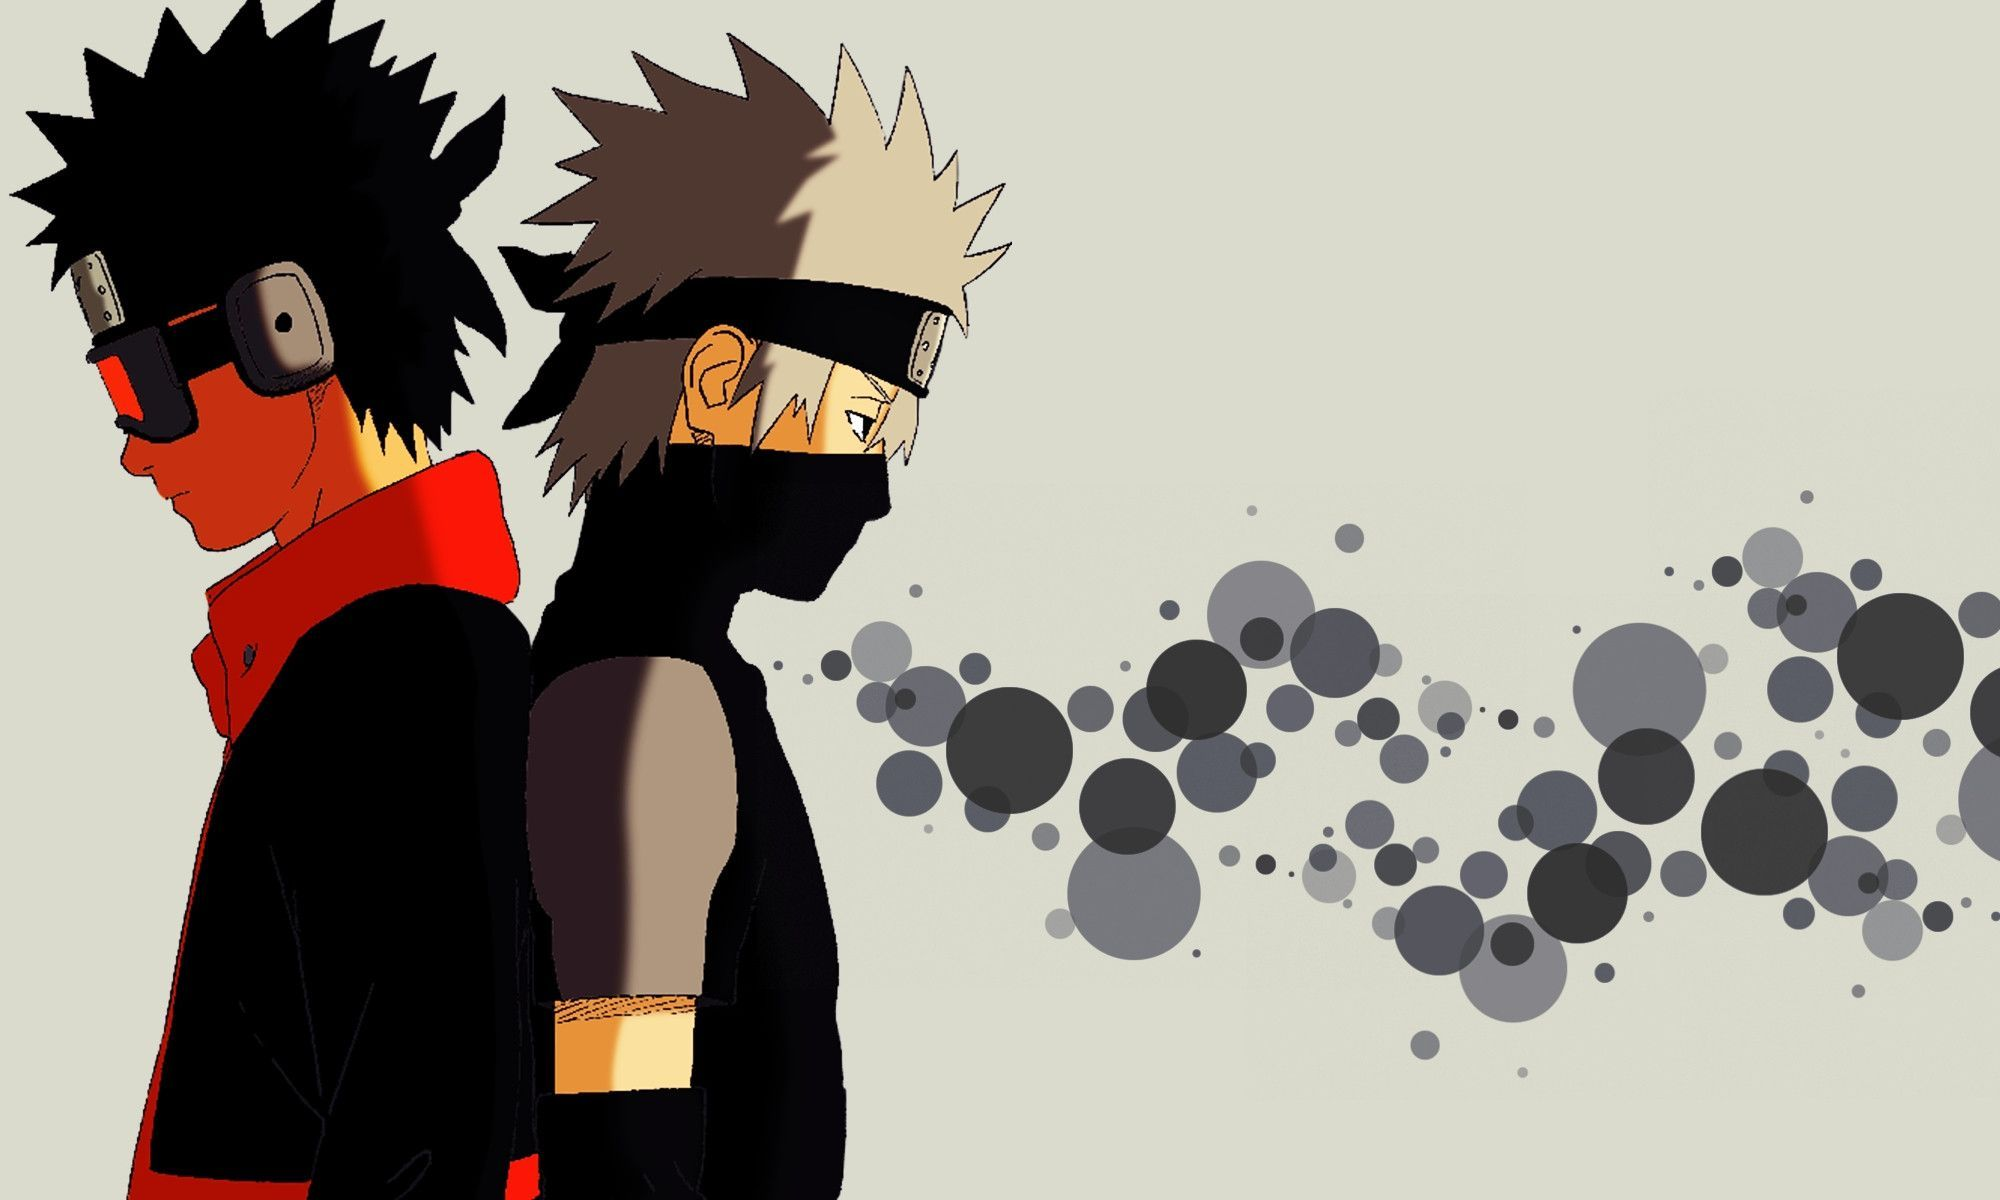 Obito Uchiha Wallpapers Wallpaper Cave アニメ, はたけカカシ, マンガ